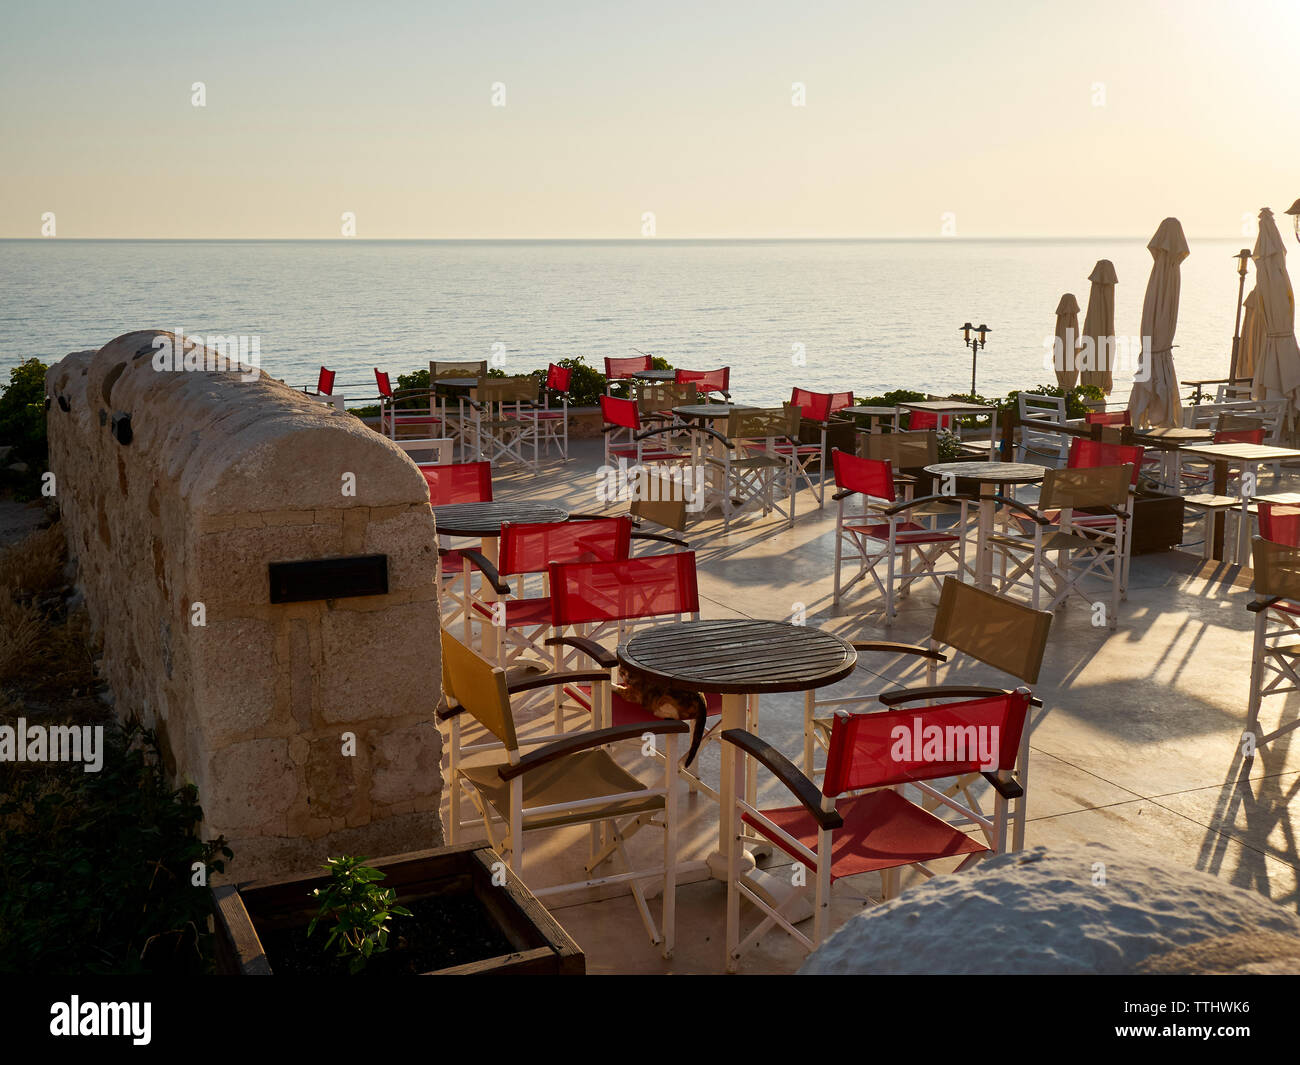 Tavern/Restaurant, Rethymno (Rethymnon), Crete, Greek Islands, Greece, Europe Stock Photo